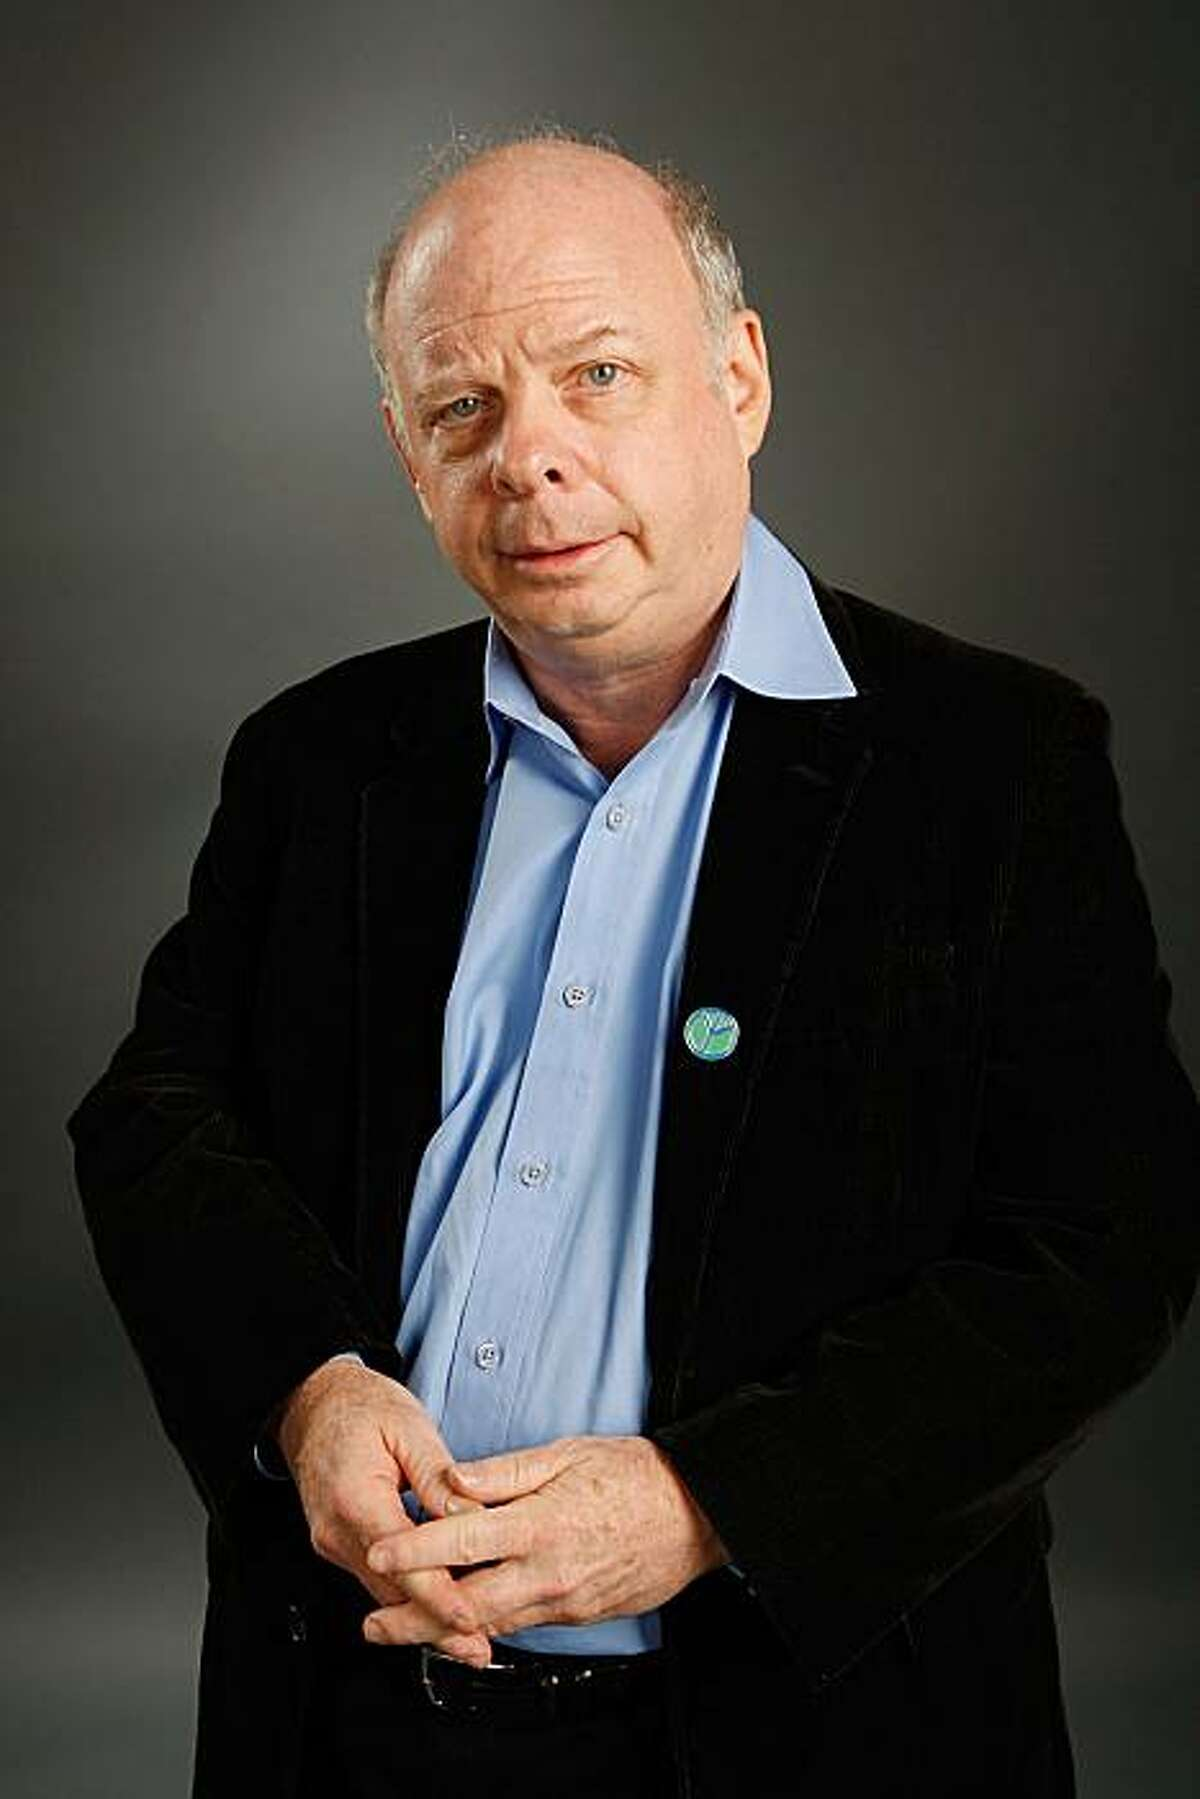 Actor Wallace Shawn of the film